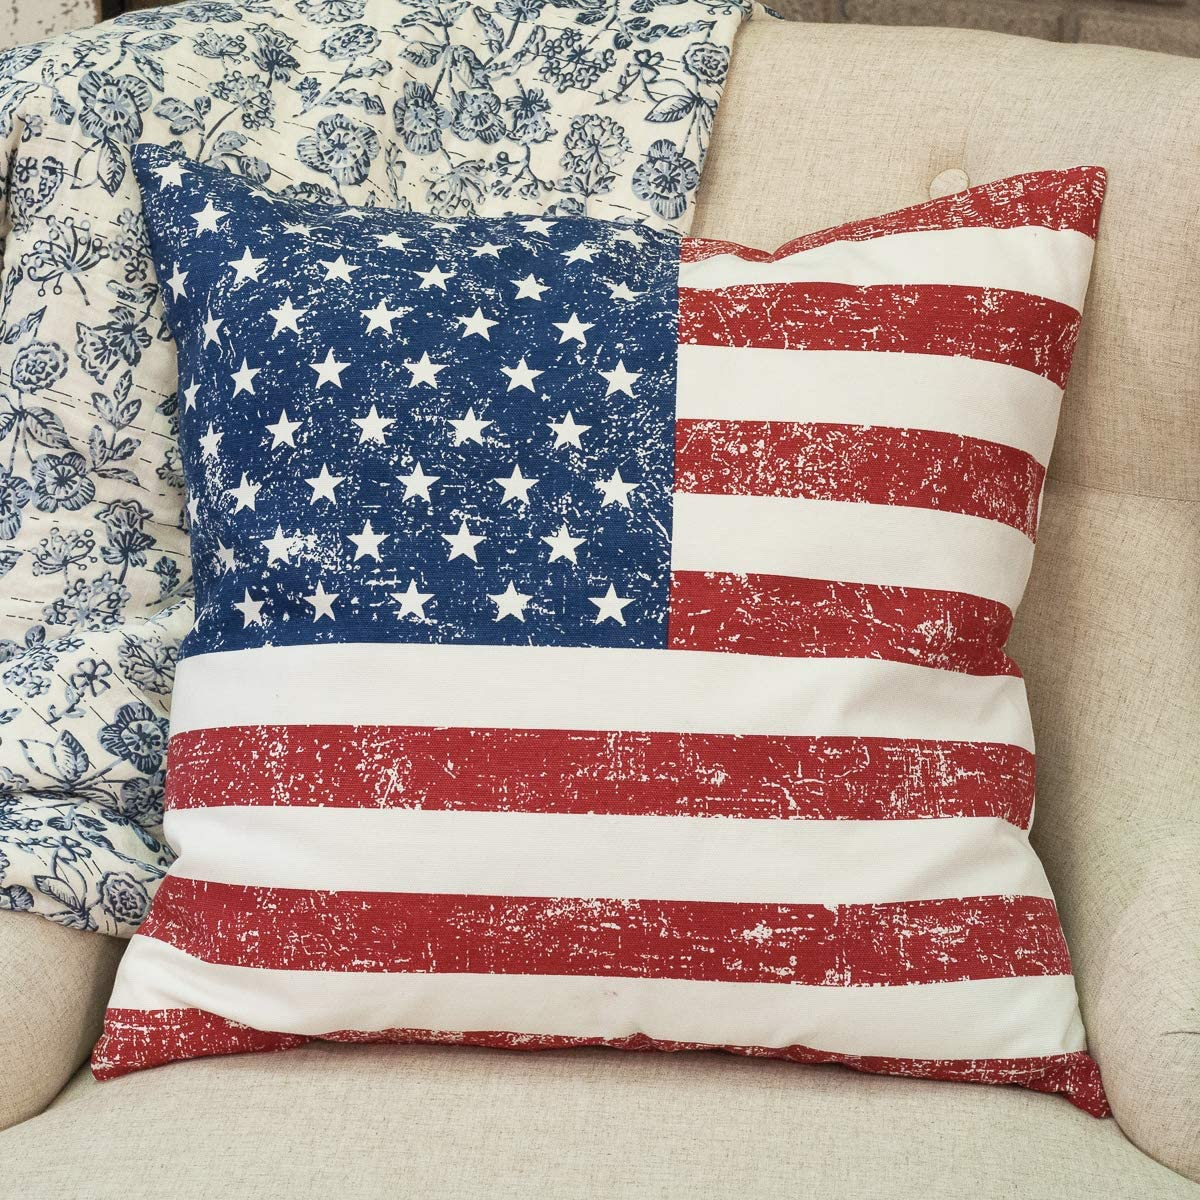 """Piper Classics American Flag Printed Throw Pillow Cover, 20"""" x 20"""", Americana Farmhouse Style Summer Décor, July 4th, Patriotic Accent, USA Flag, Distressed Printed Design"""